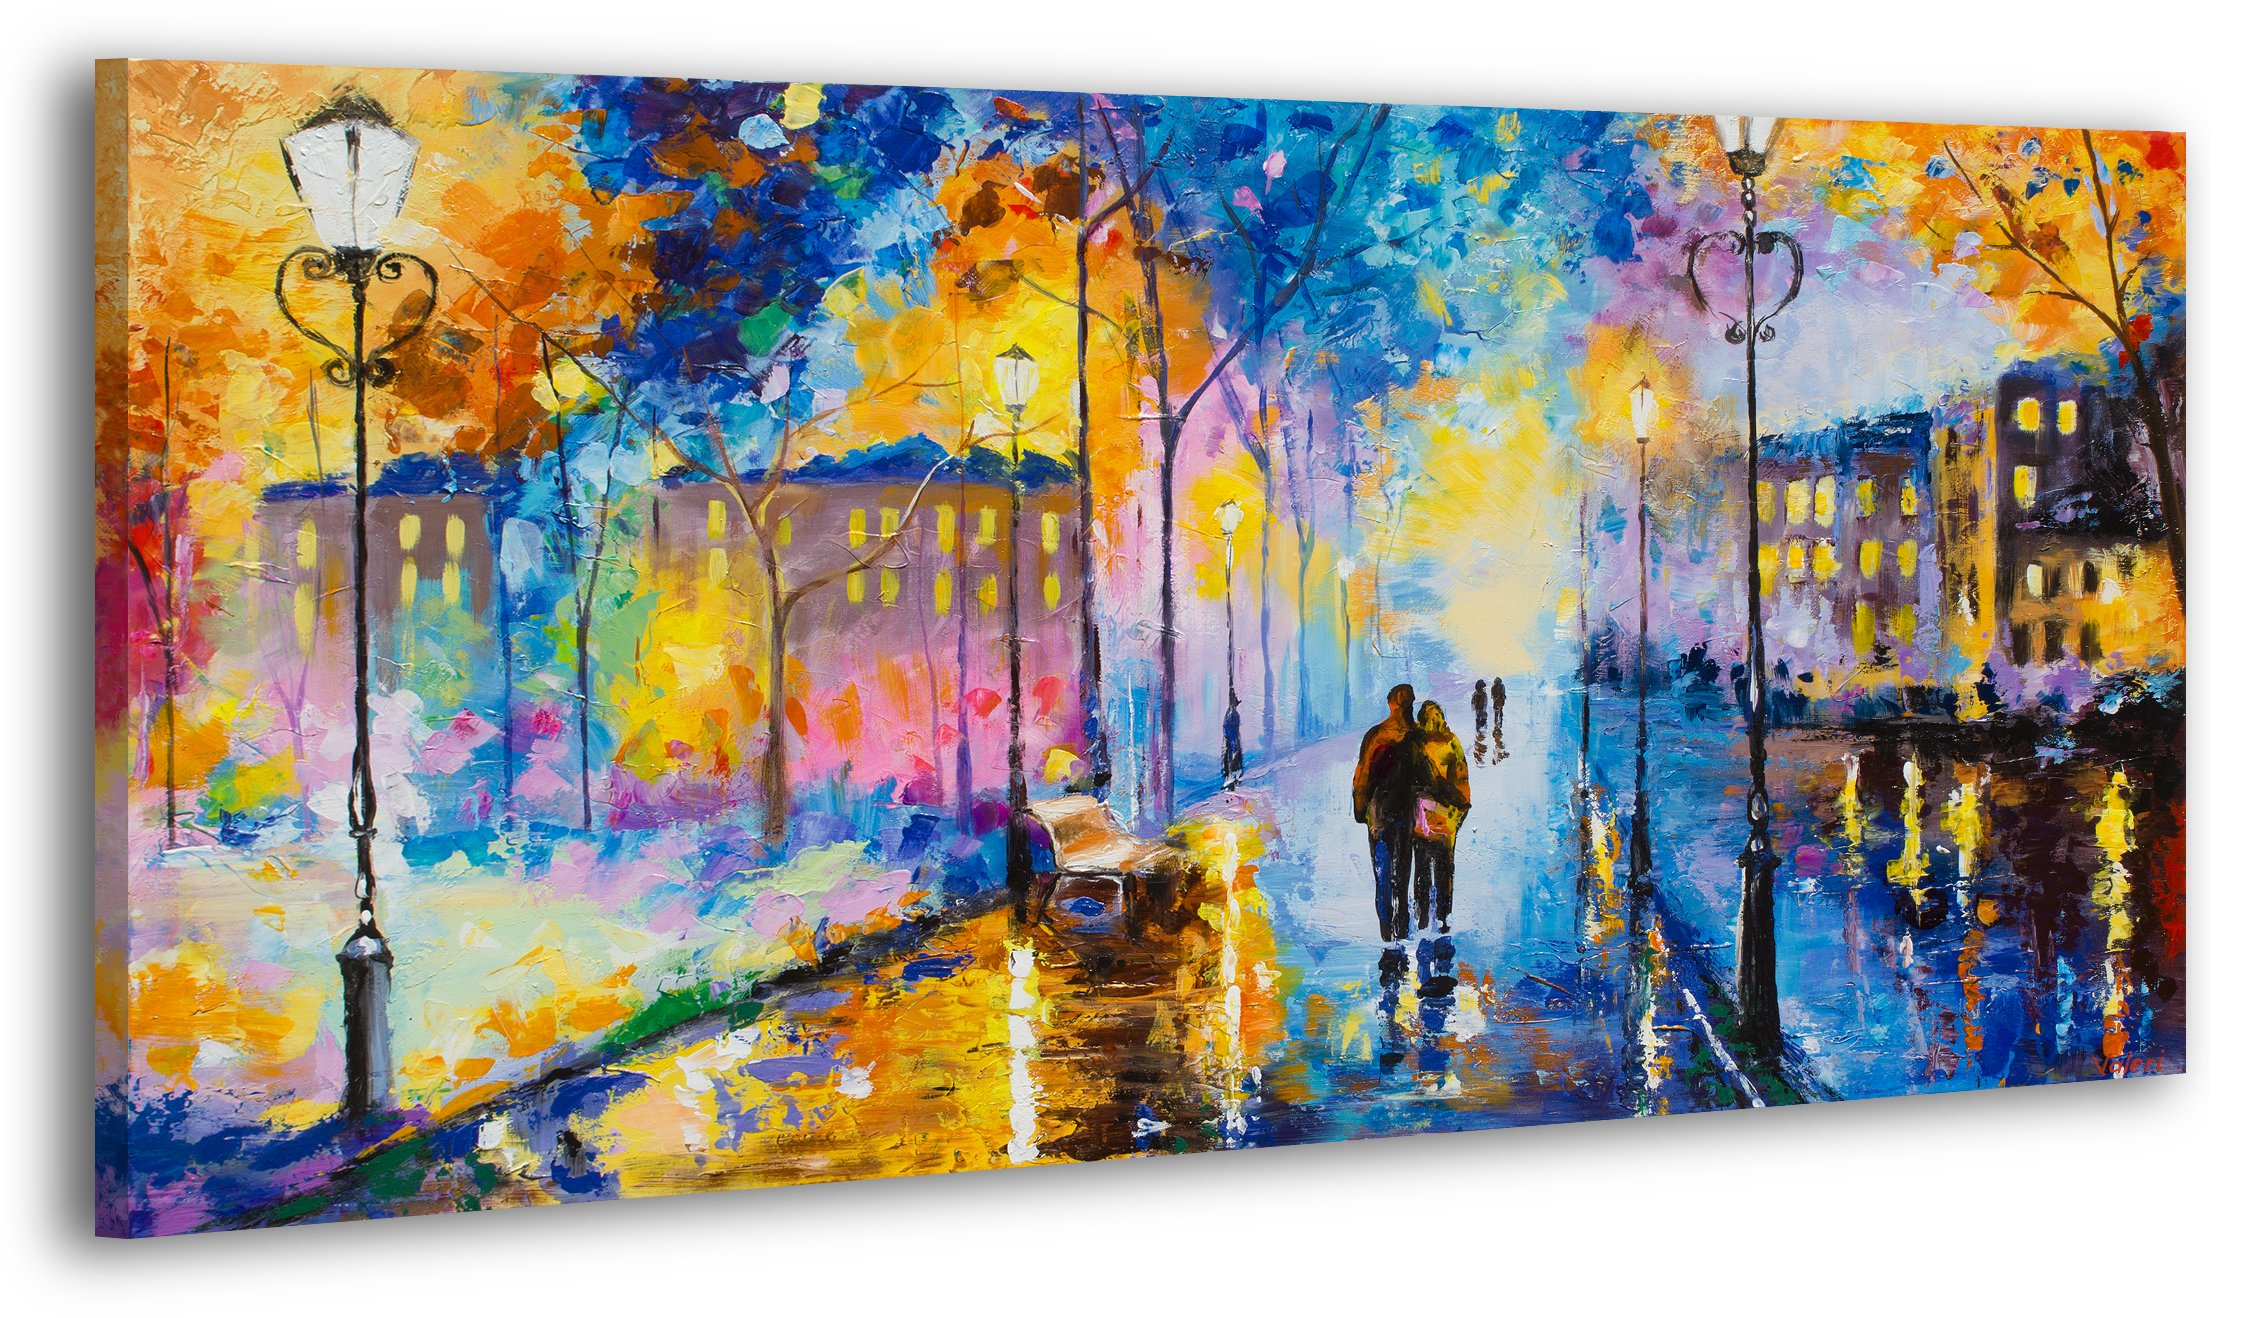 100% HANDPAINTED YS-Art Acrylic Painting + Certificate | Made in Europe | 51 x 28 inch (130x70 cm) | Artwork on Canvas with Wooden Frame | Handmade Picture Ready to Hang in your Living Room or Bedroom